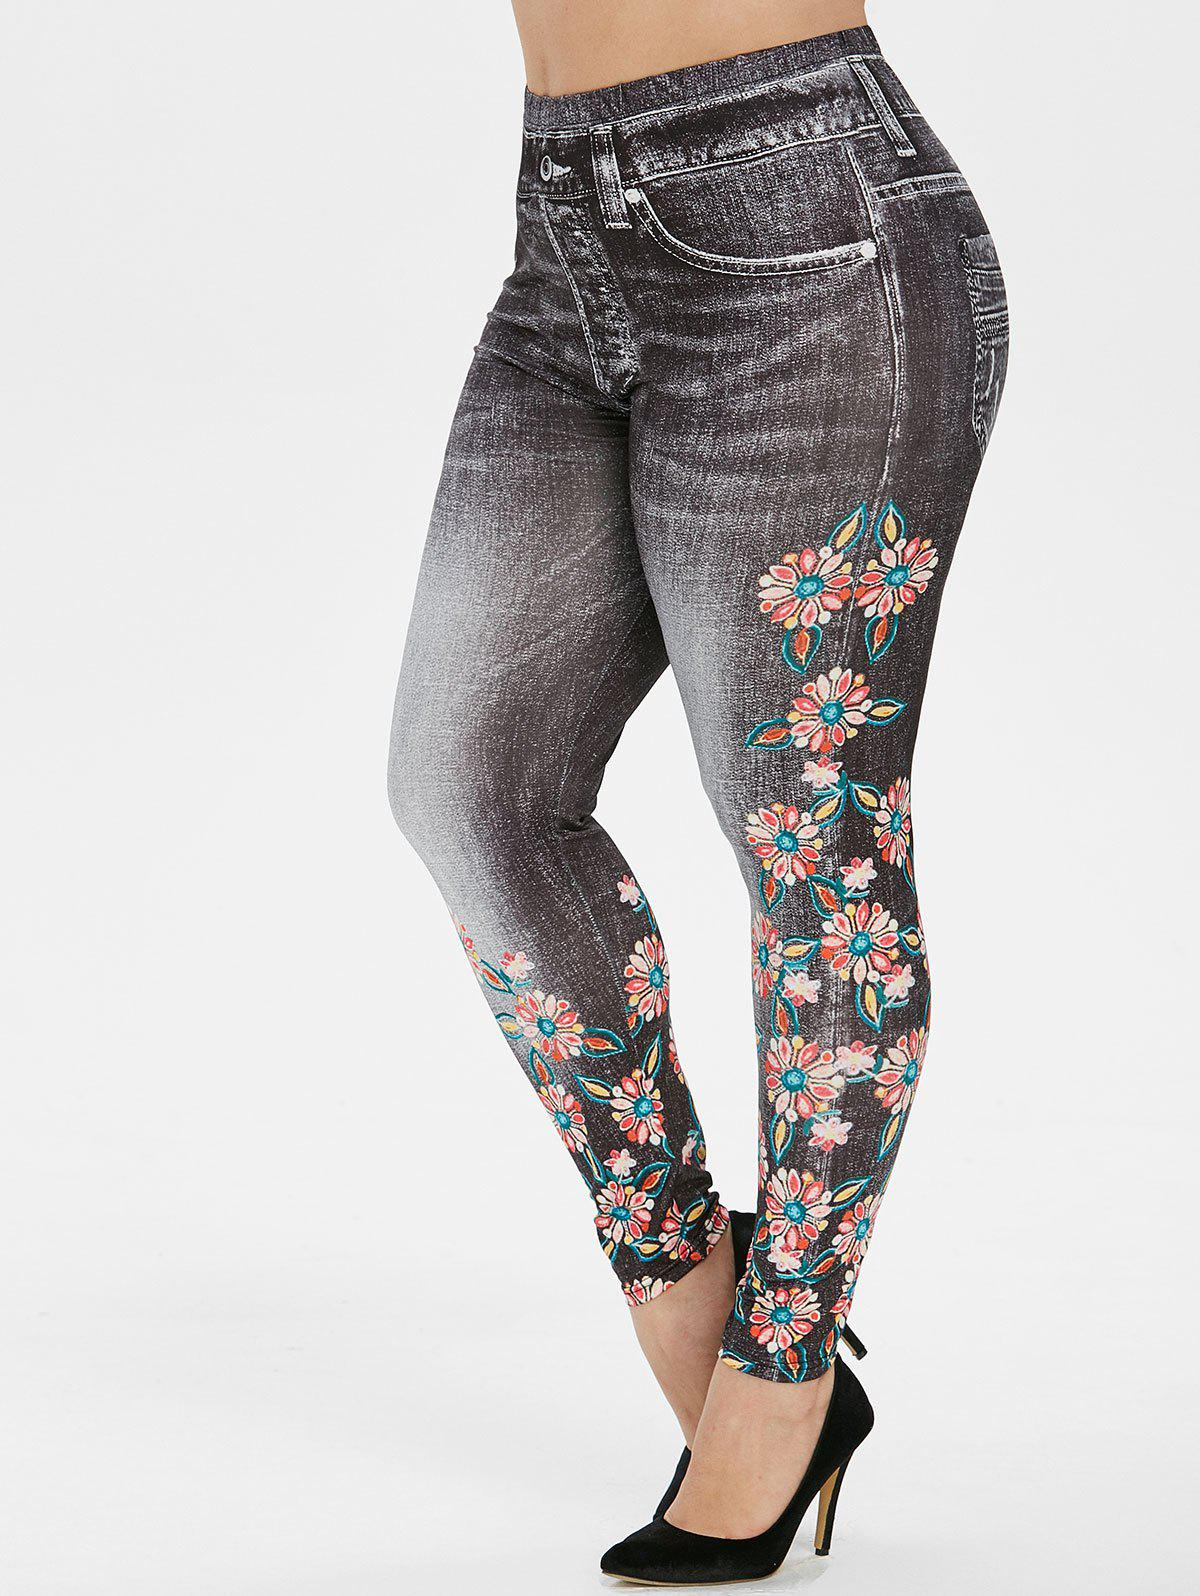 Plus Size Floral Print 3D Faded Jeggings - BLACK 5X